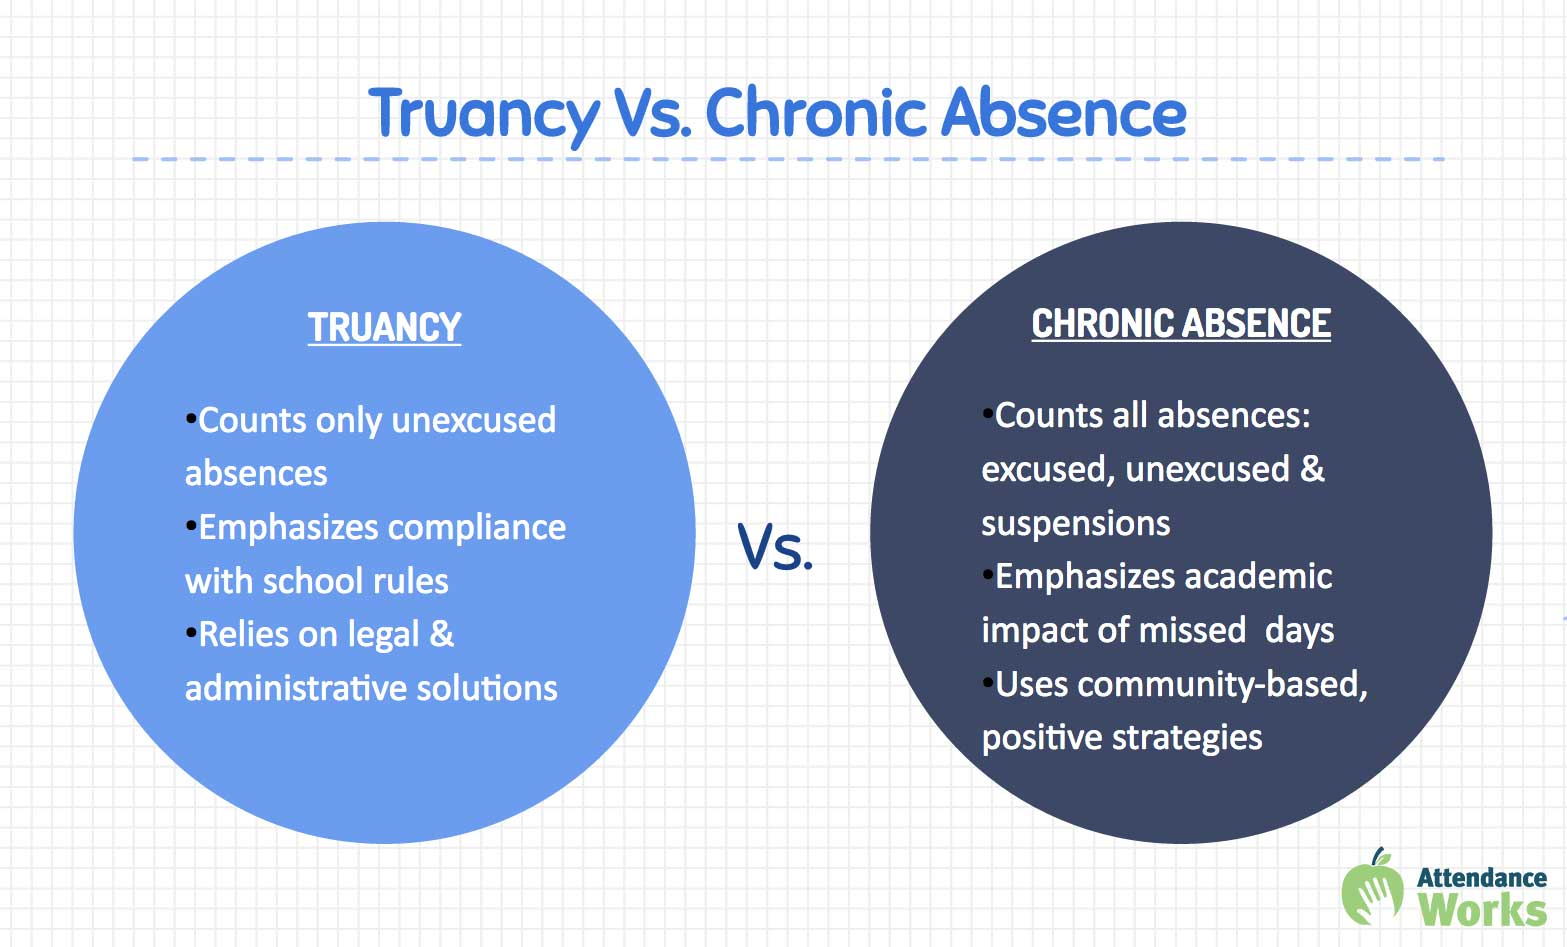 TruancyVChronicAbsence-updated